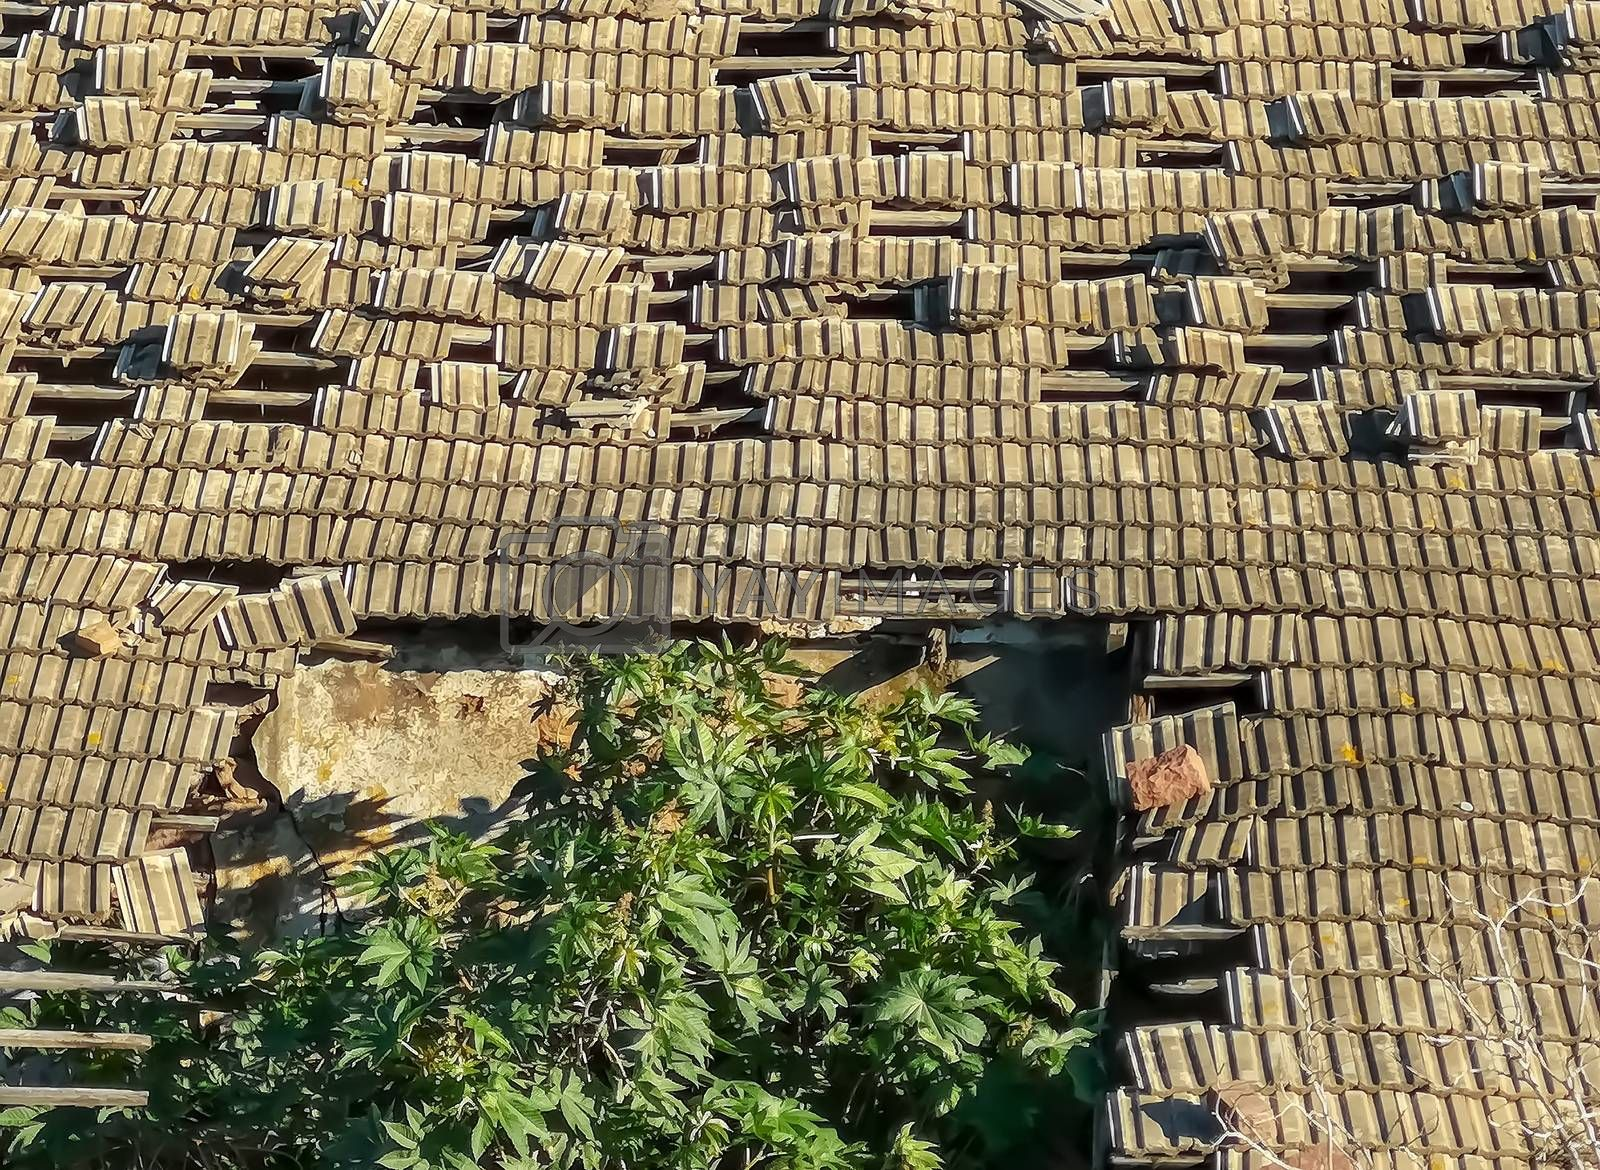 Roof of a gray tiles collapsing with a tree emerging